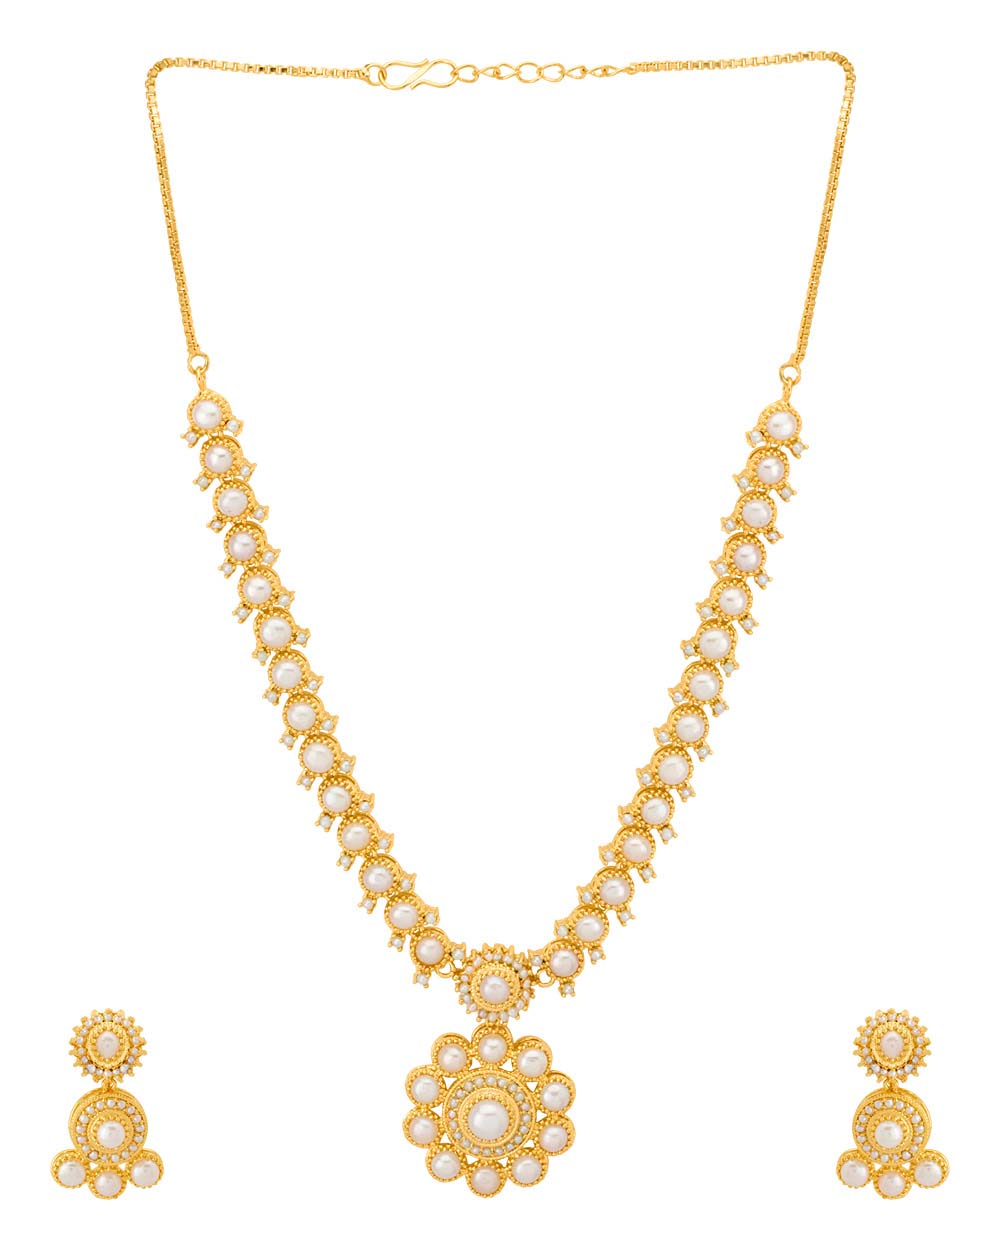 Buy Mandala Design Gold Plated Necklace Set with Pearl Beads Online ...